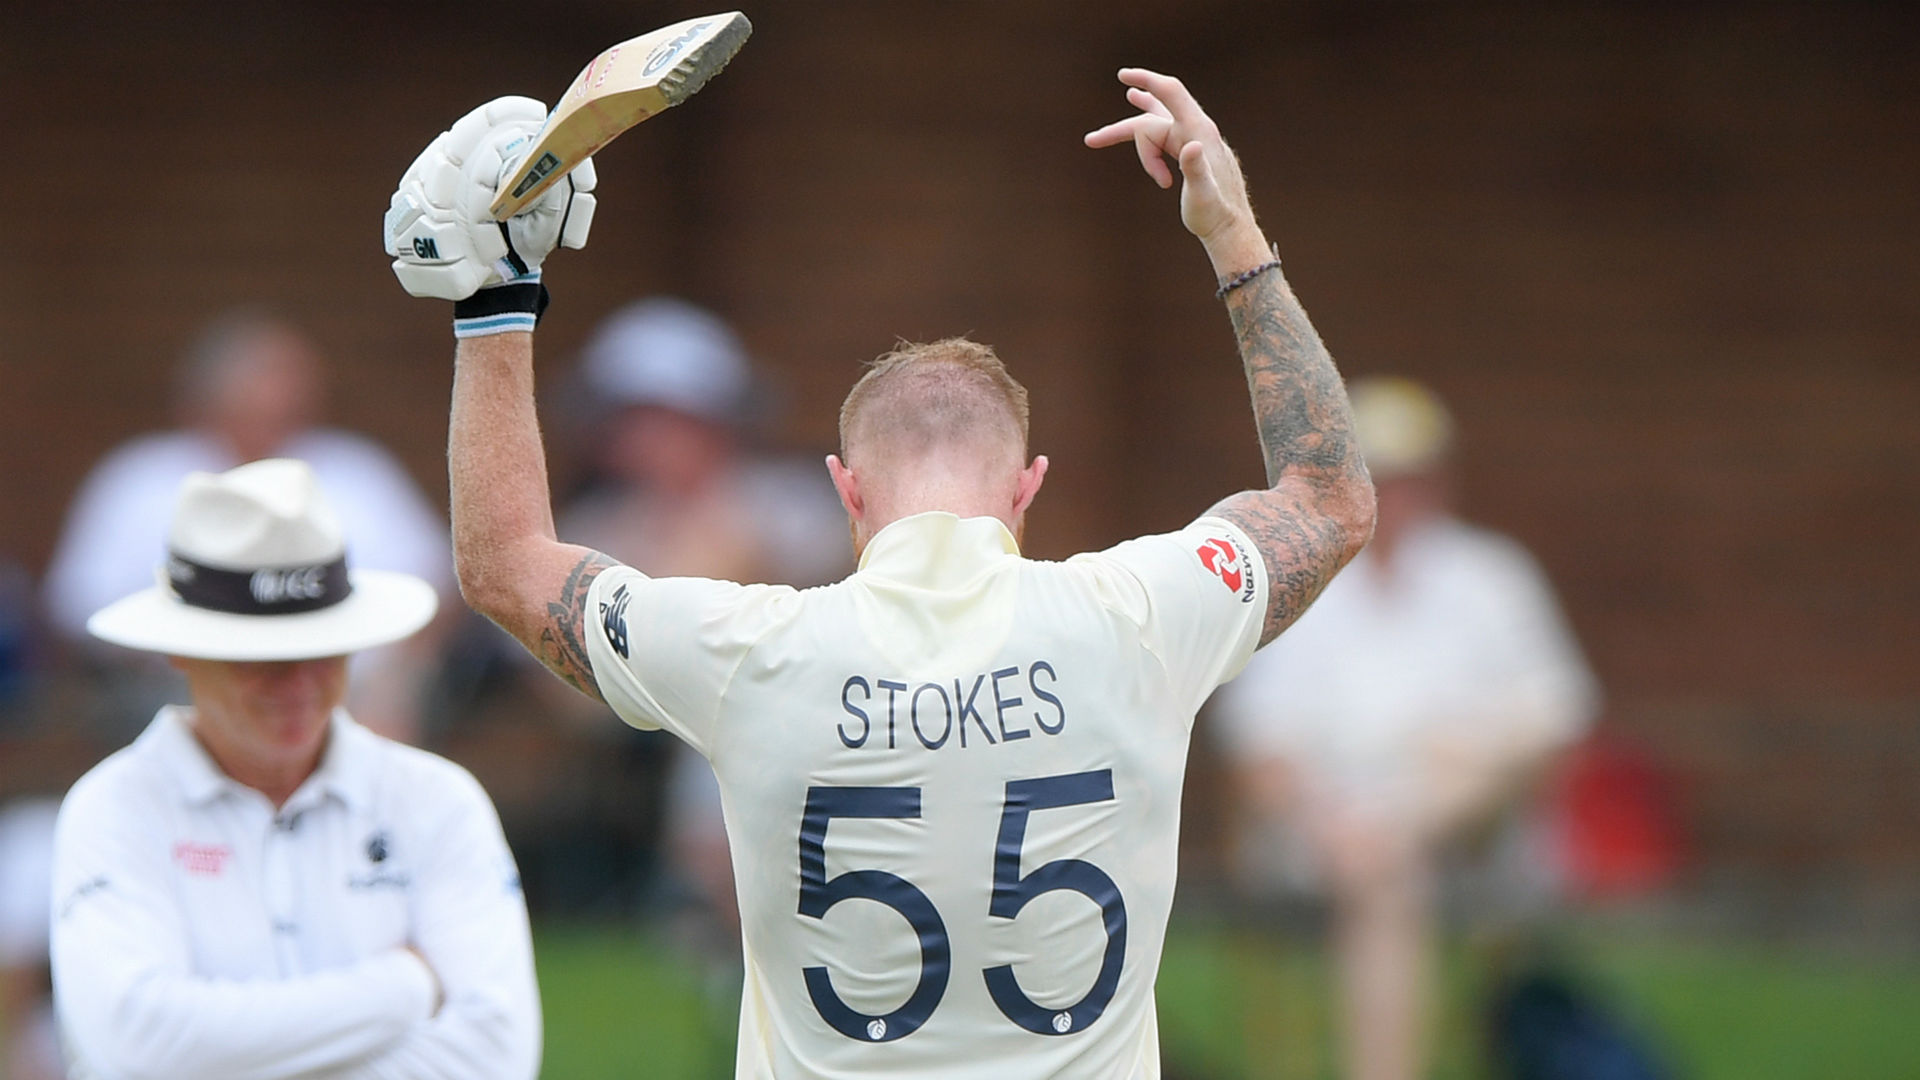 England all-rounder Stokes posts family picture as father returns home